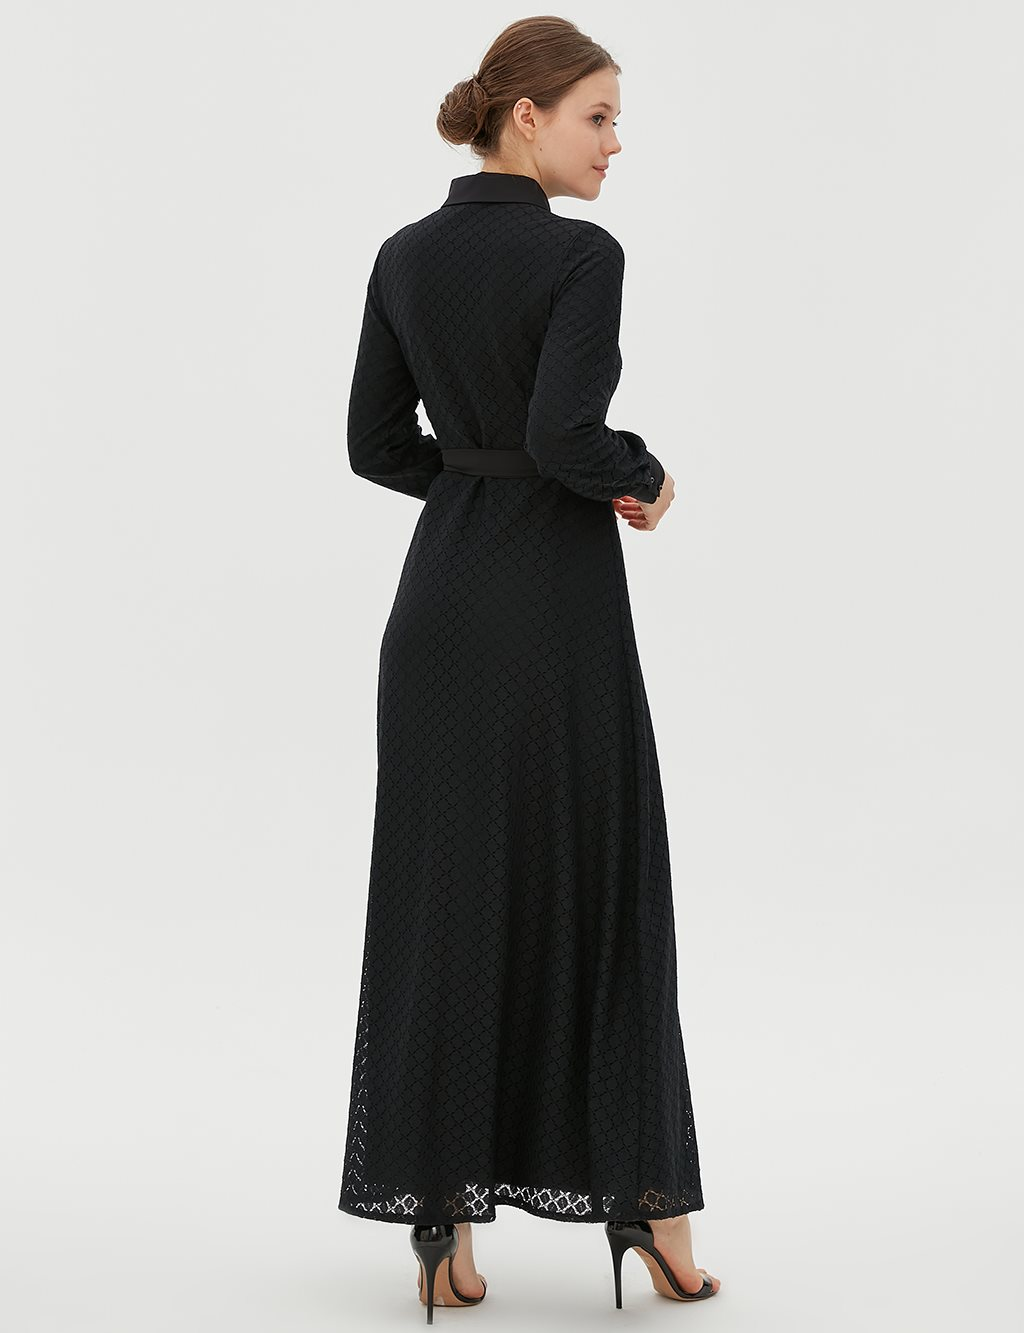 KYR Dress With Belt B20 83011 Black